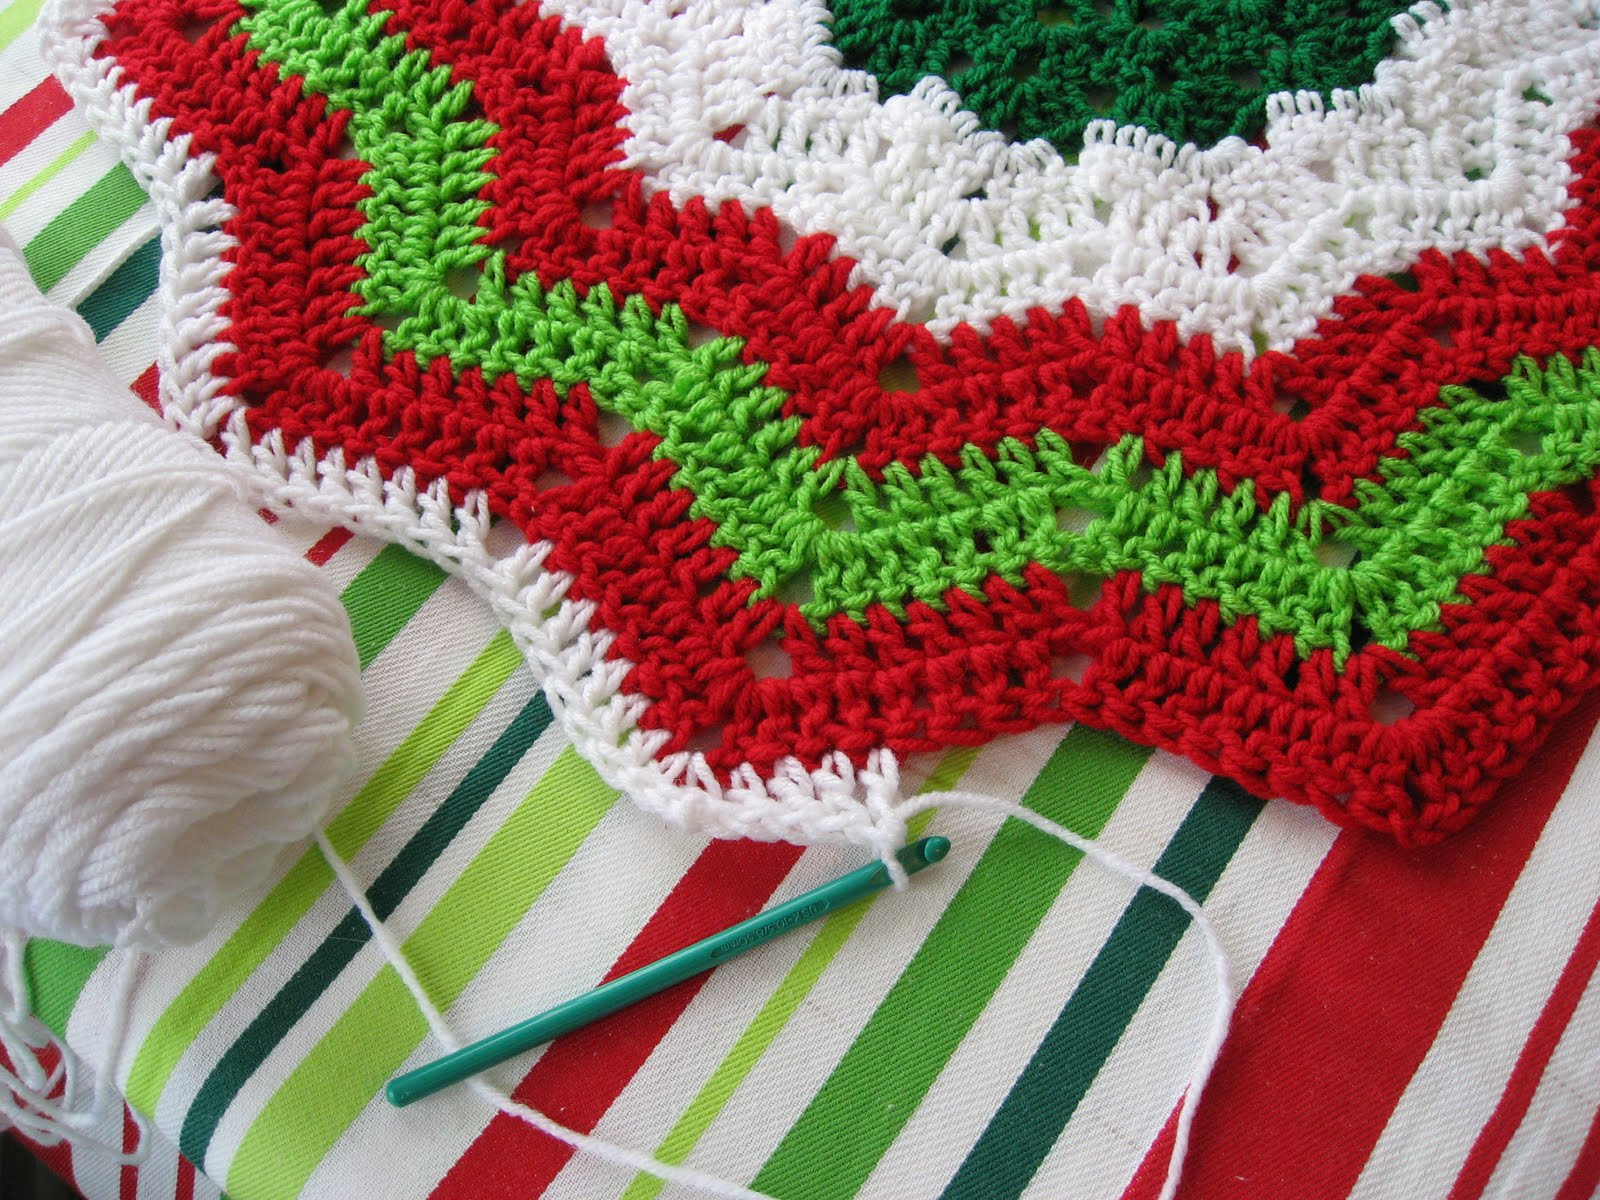 Free Crochet Patterns For Xmas Trees : Free Crochet Christmas Tree Pattern - Crochet Club